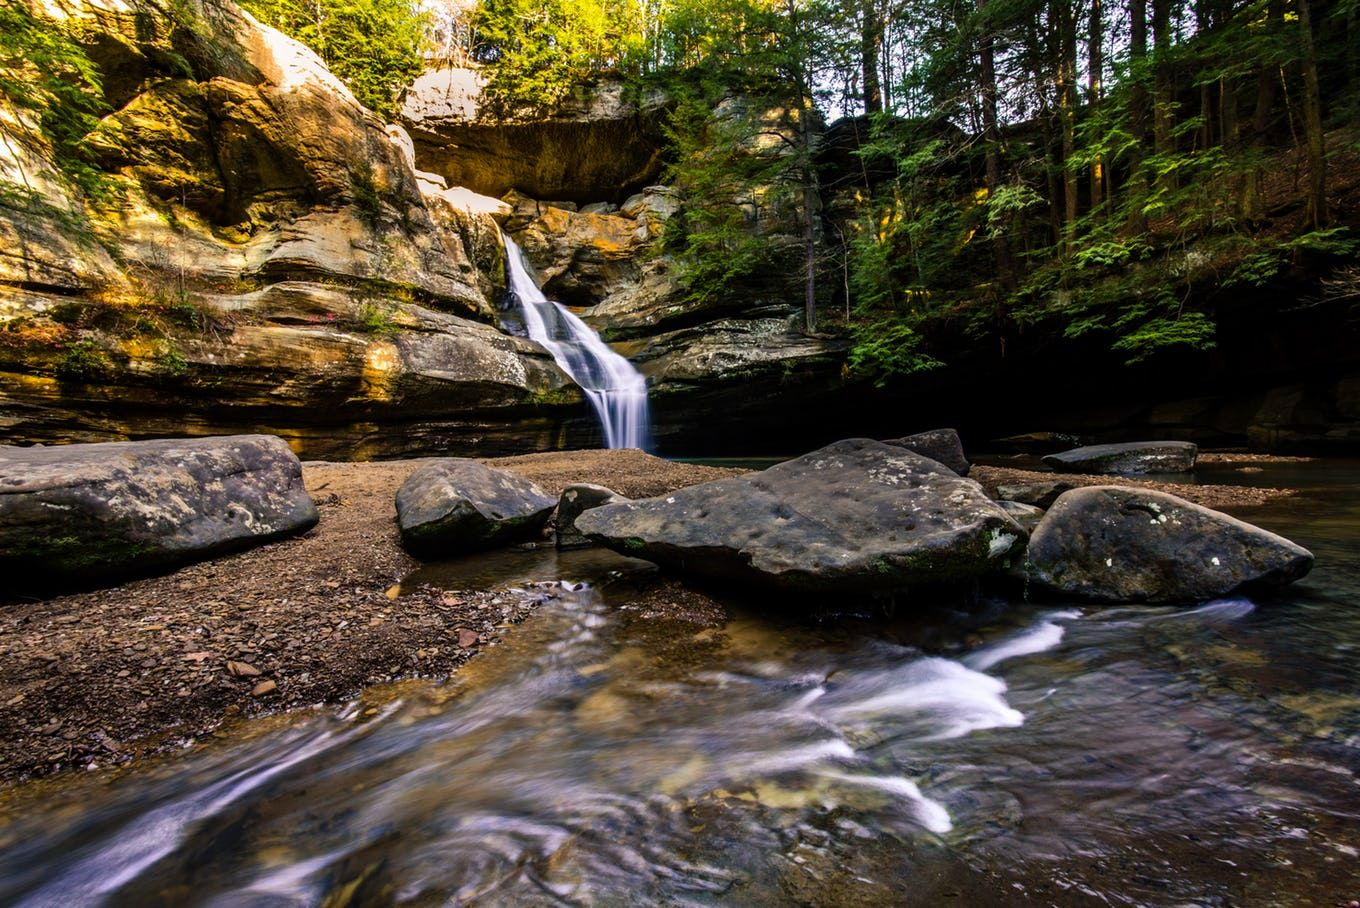 8 trails you must hike in hocking hills state park ohio